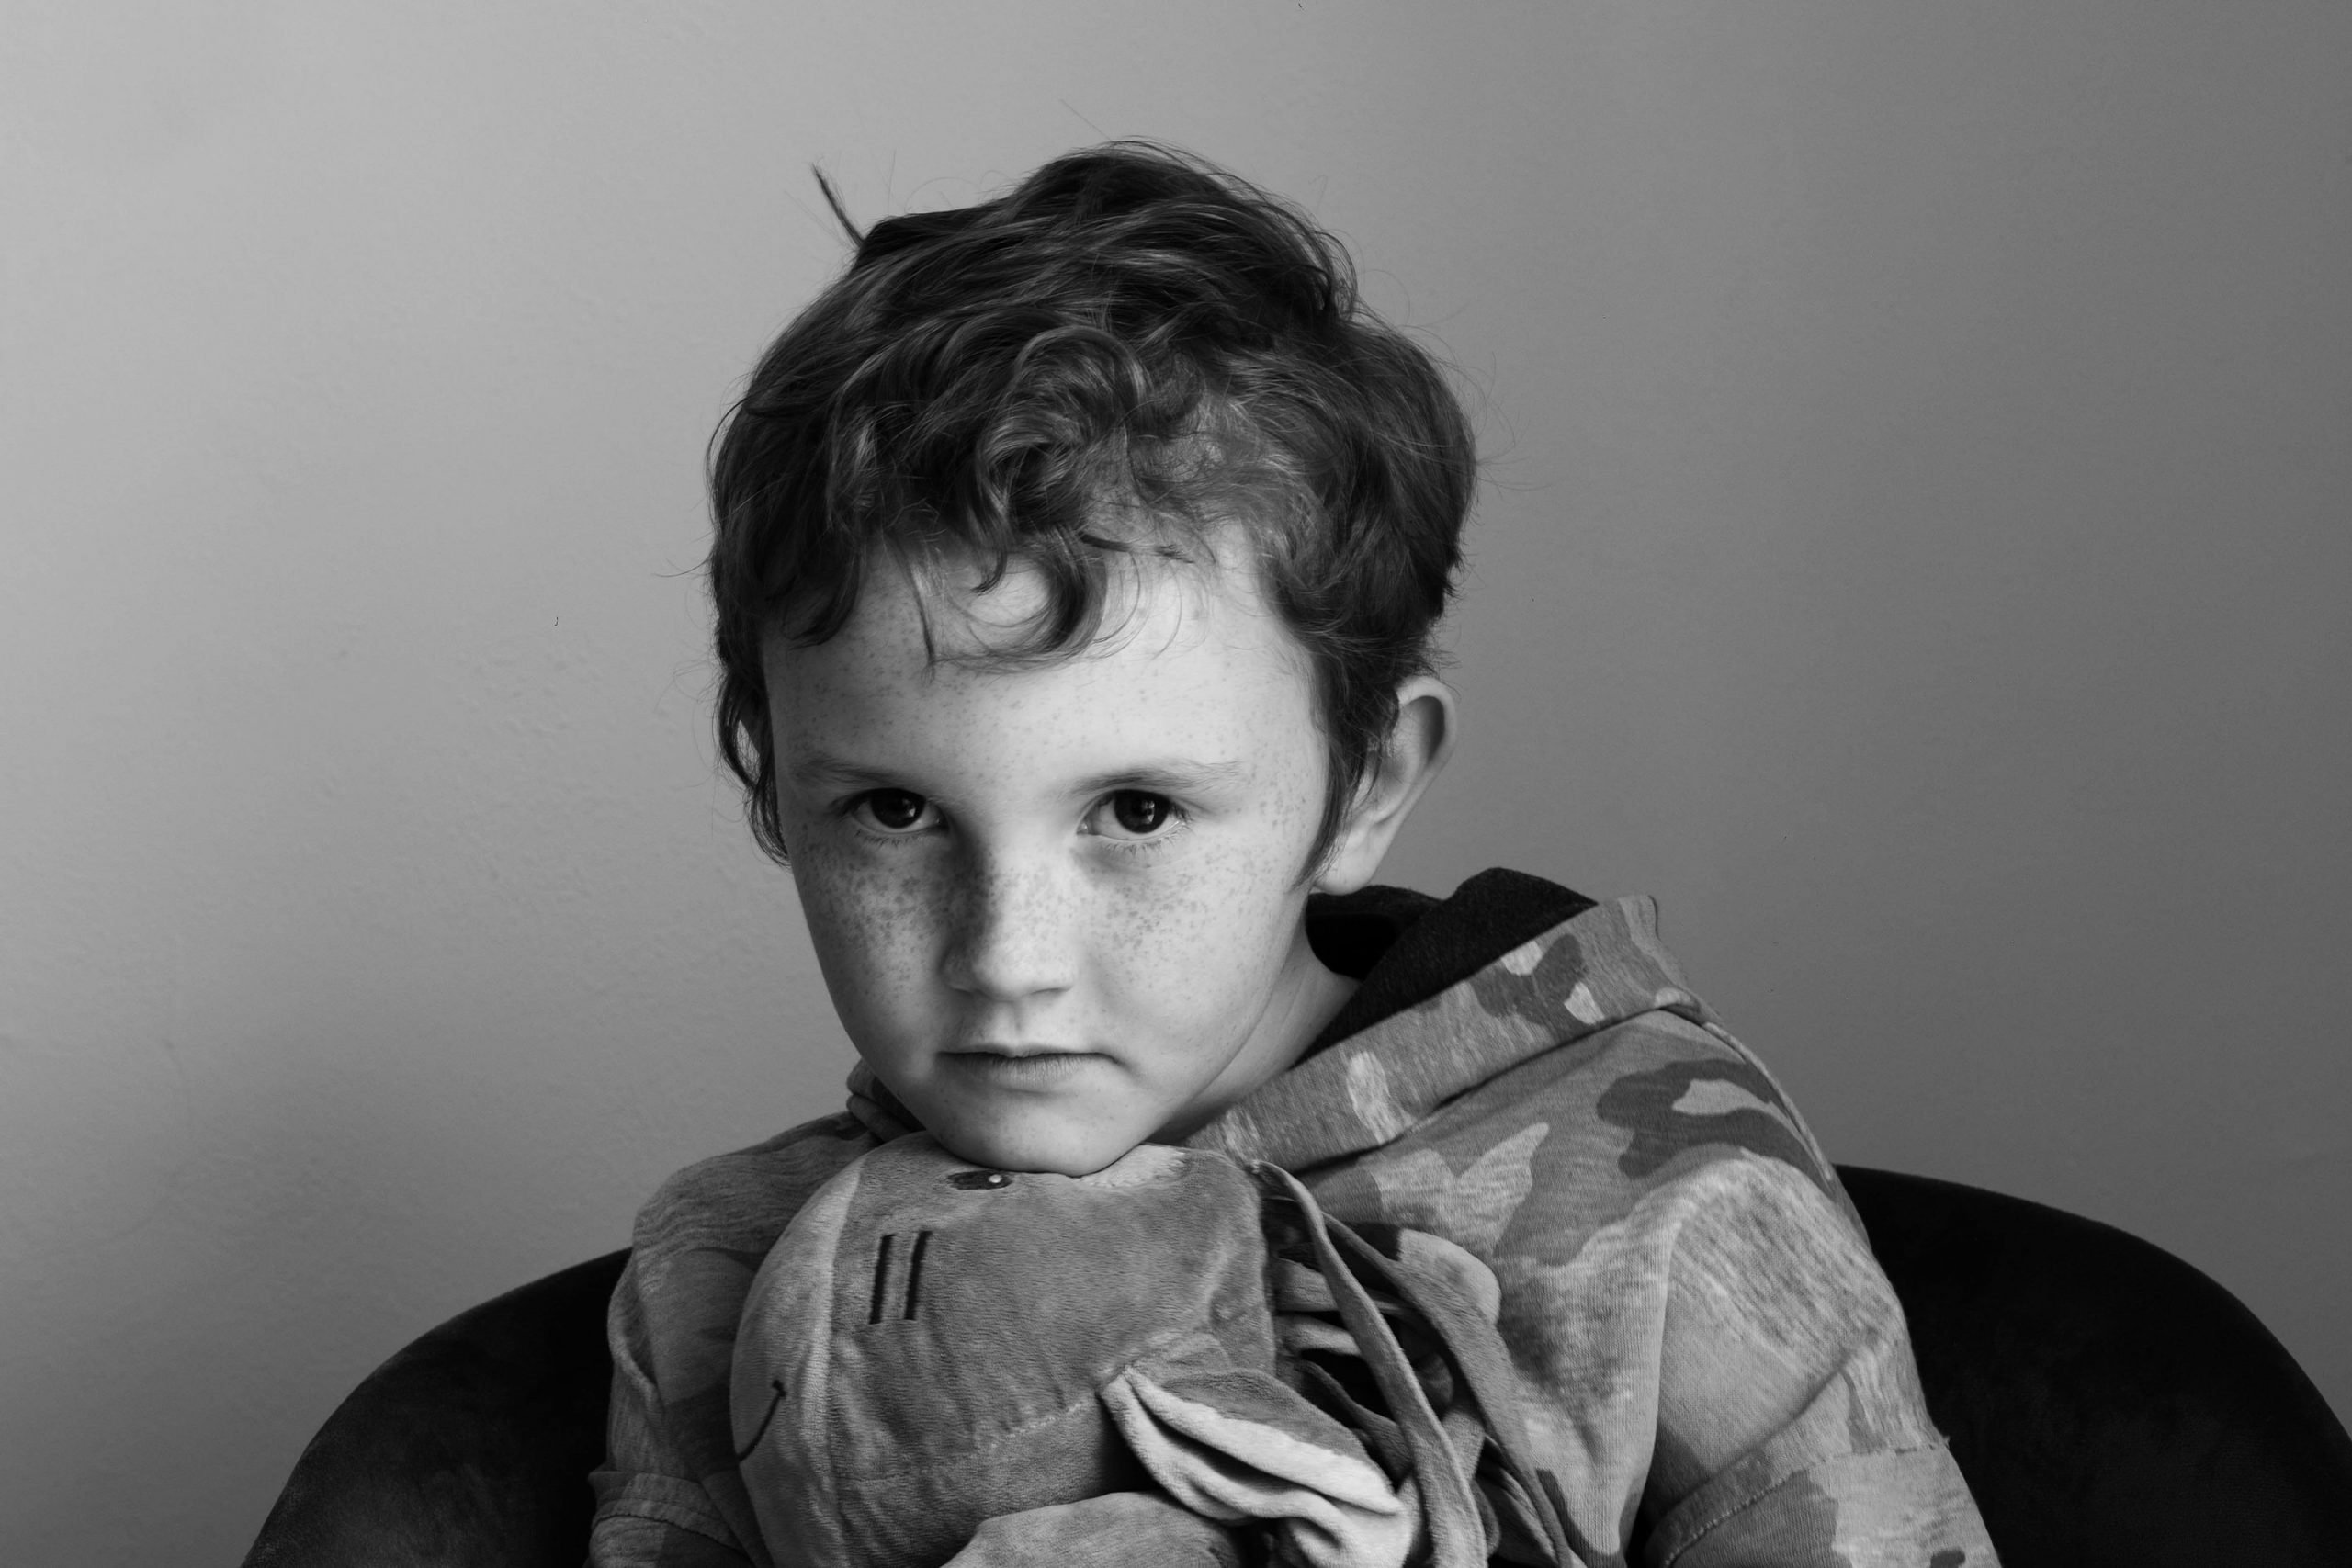 Young boy looks at the camera holding a horse toy. Monochrome headshot portrait photography by York Place